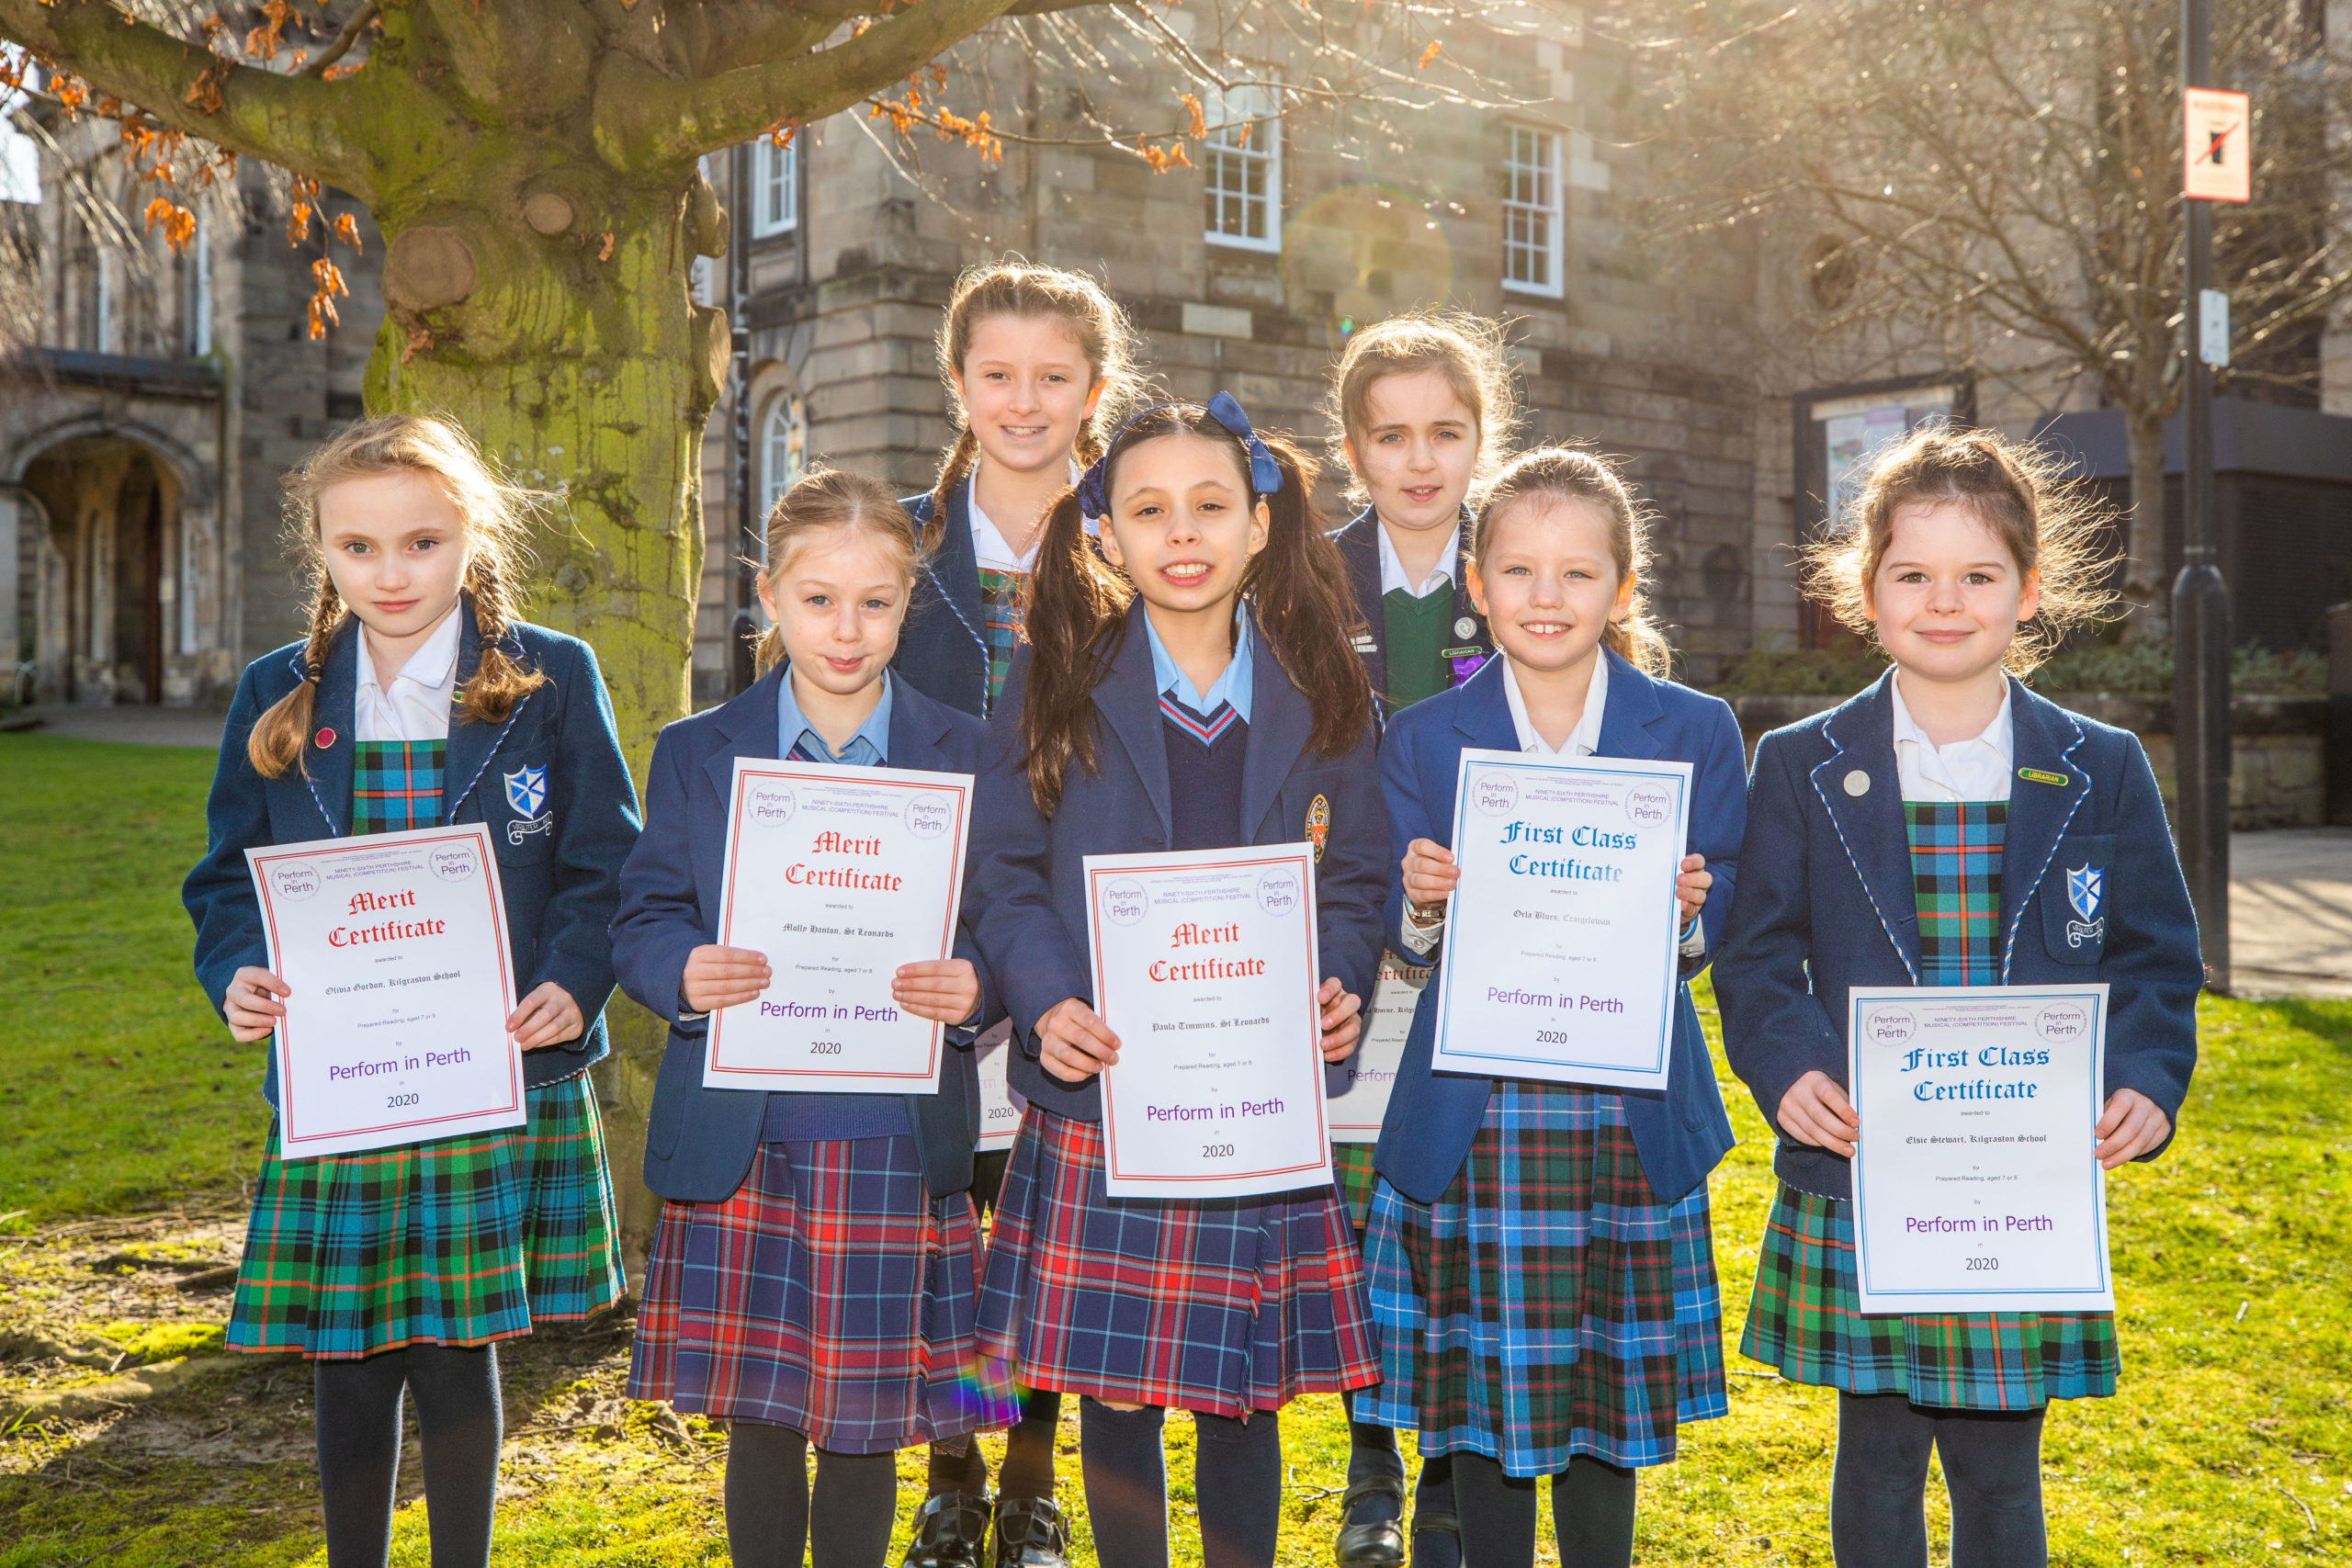 Class 422 competitors - prepared reading aged 7 or 8 - - front row, left to right, Olivia Gordon (Kilgraston School), Molly Hanton (St Leonards School, St Andrews), Paula Timmins (joint 3rd place, St Leonards School, St Andrews), Orla Blues (1st place, Craigclowan School), Elsie Stewart (2nd place, Kilgraston School). Back row, left is Alice Hutcheson (Kilgraston School) and right is Emma Horne (3rd place, Kilgraston School).